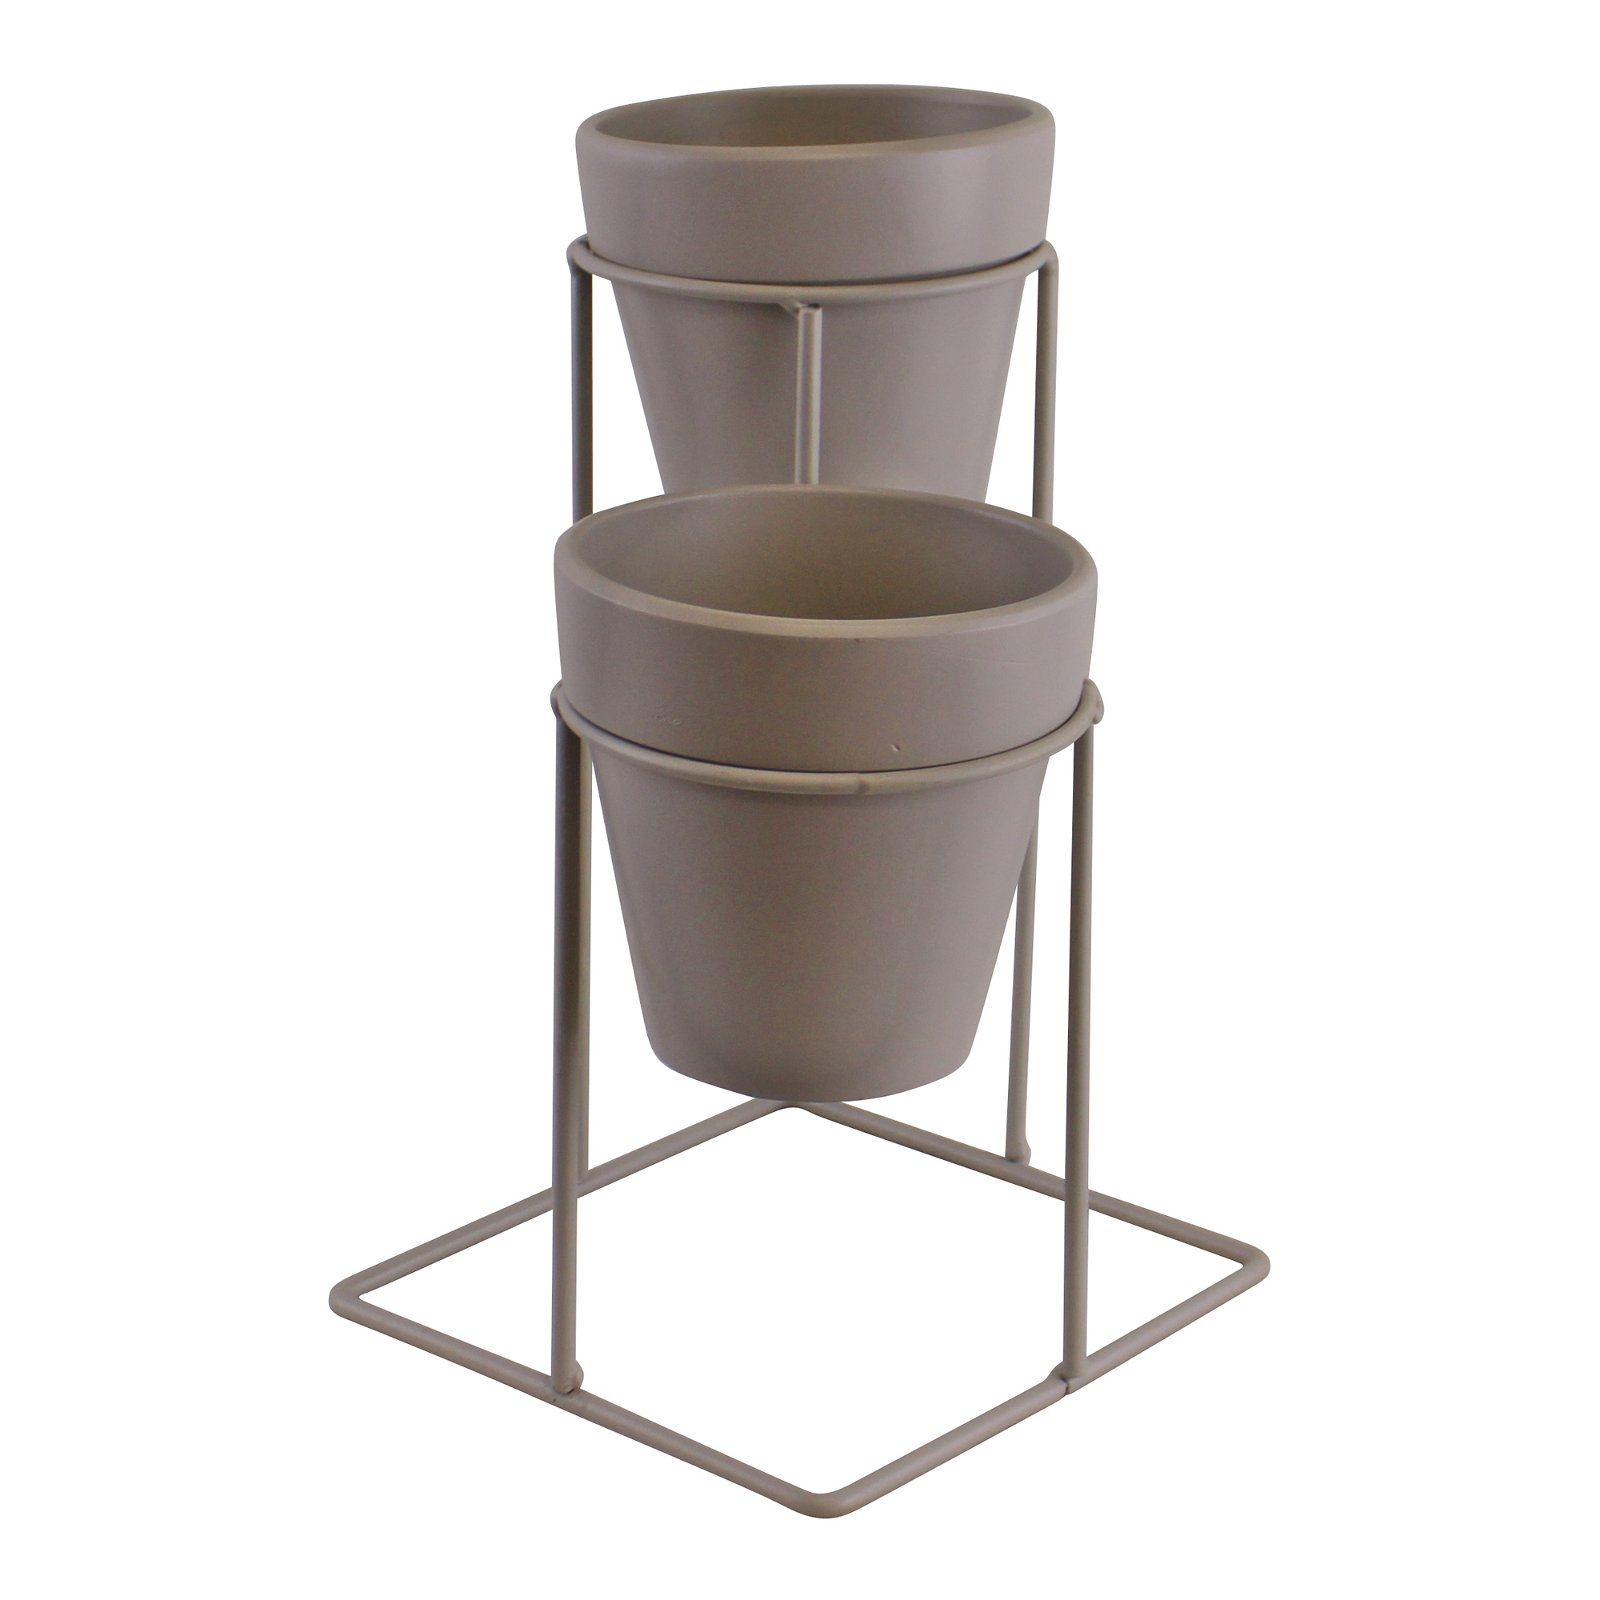 Potting Shed Small Double Planter On Stand, Grey